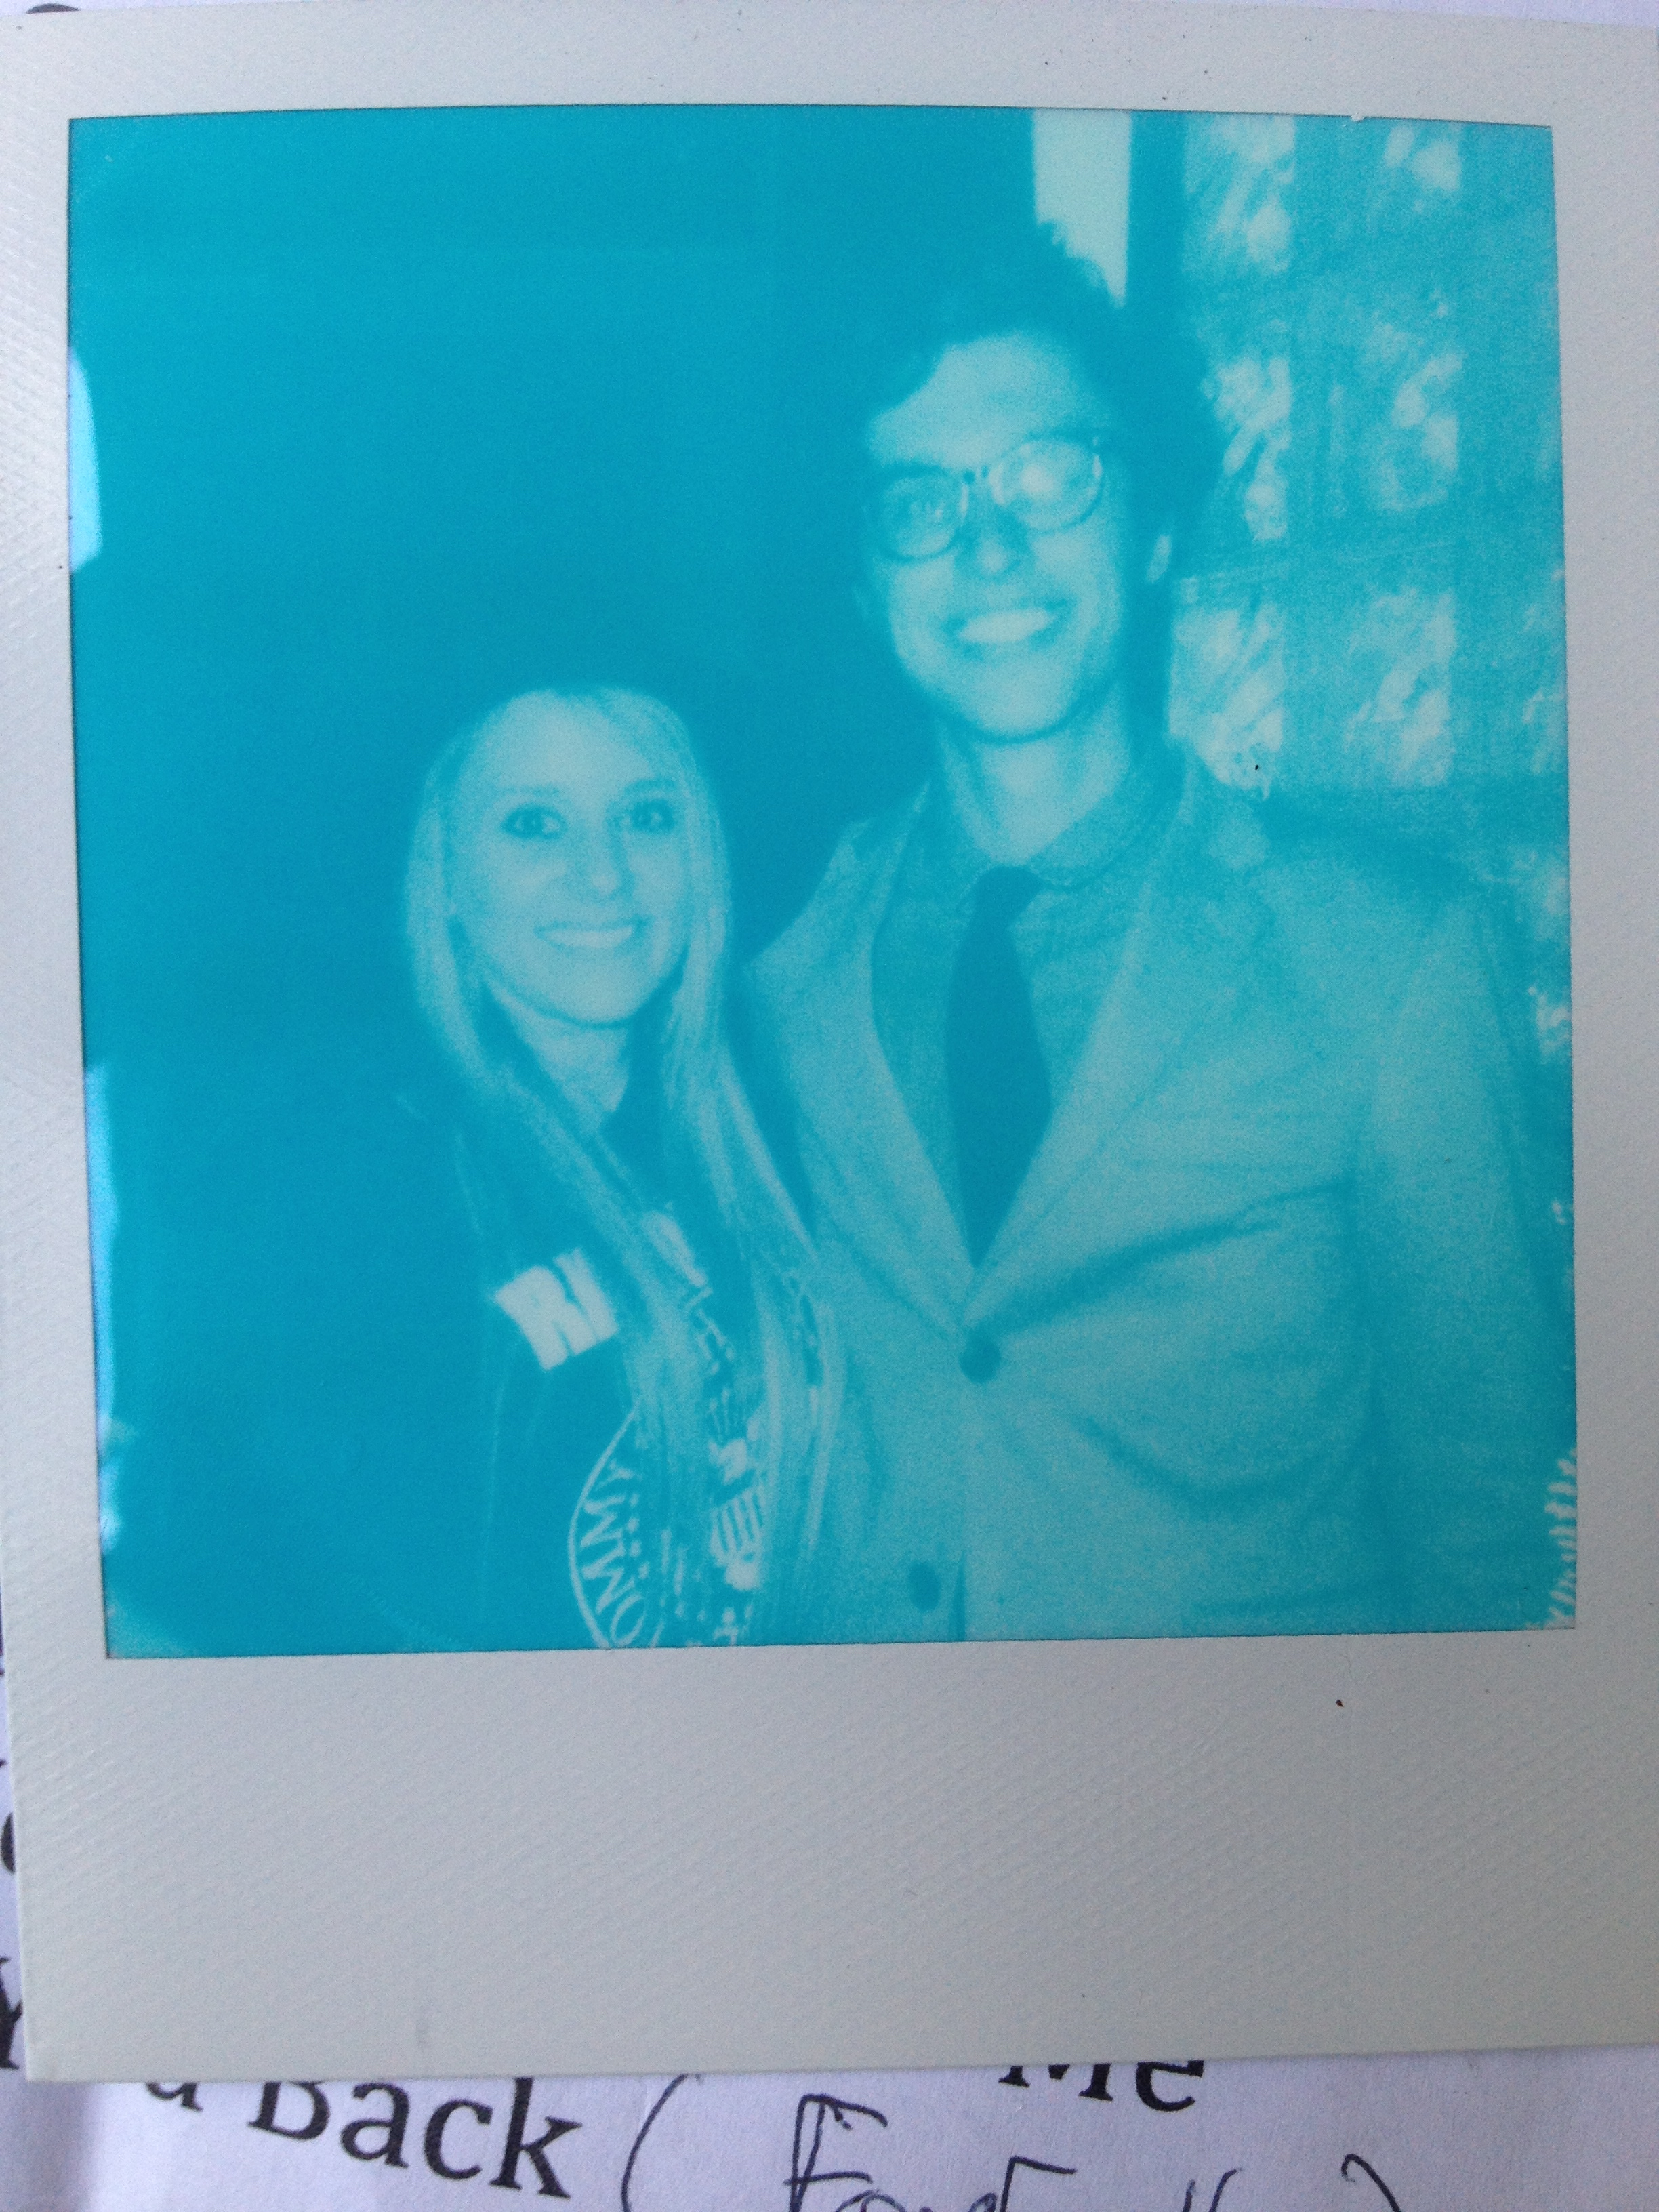 The author with Whiskey Autumn frontman   Greg Laut  . Blue polaroid courtesy Becky Guidera.